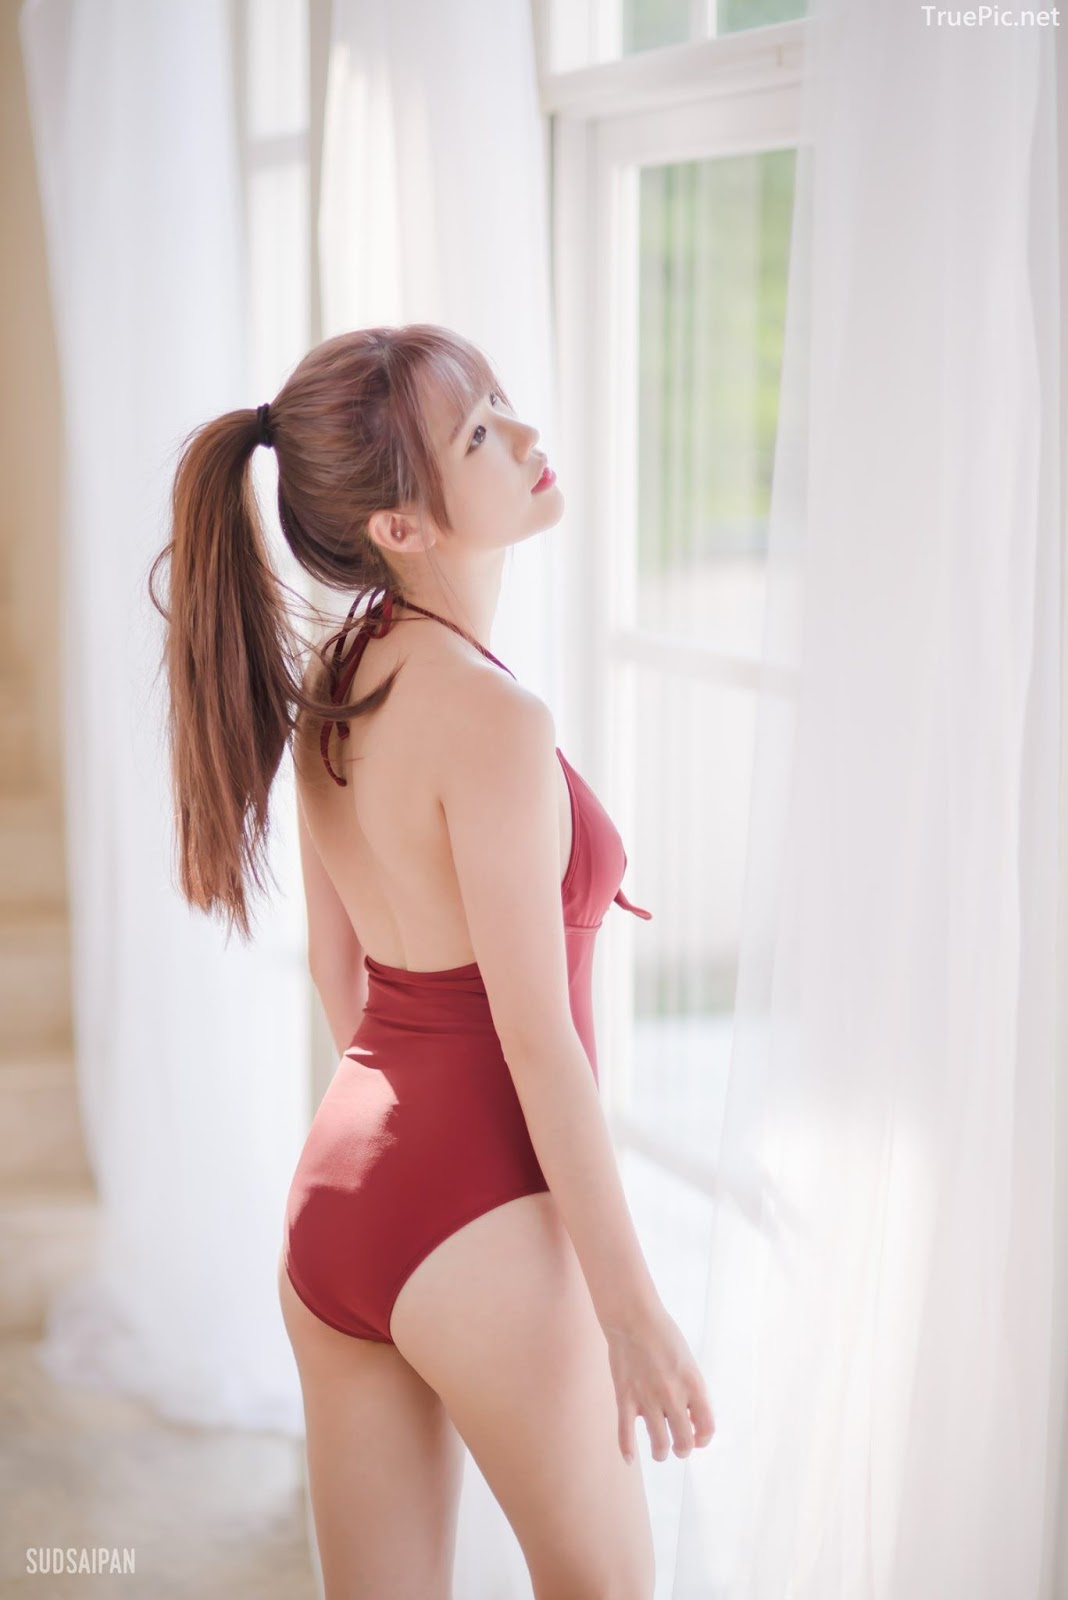 Chinese hot streaming girl - 簡欣汝 - Red Swimming Suit - TruePic.net - Picture 7